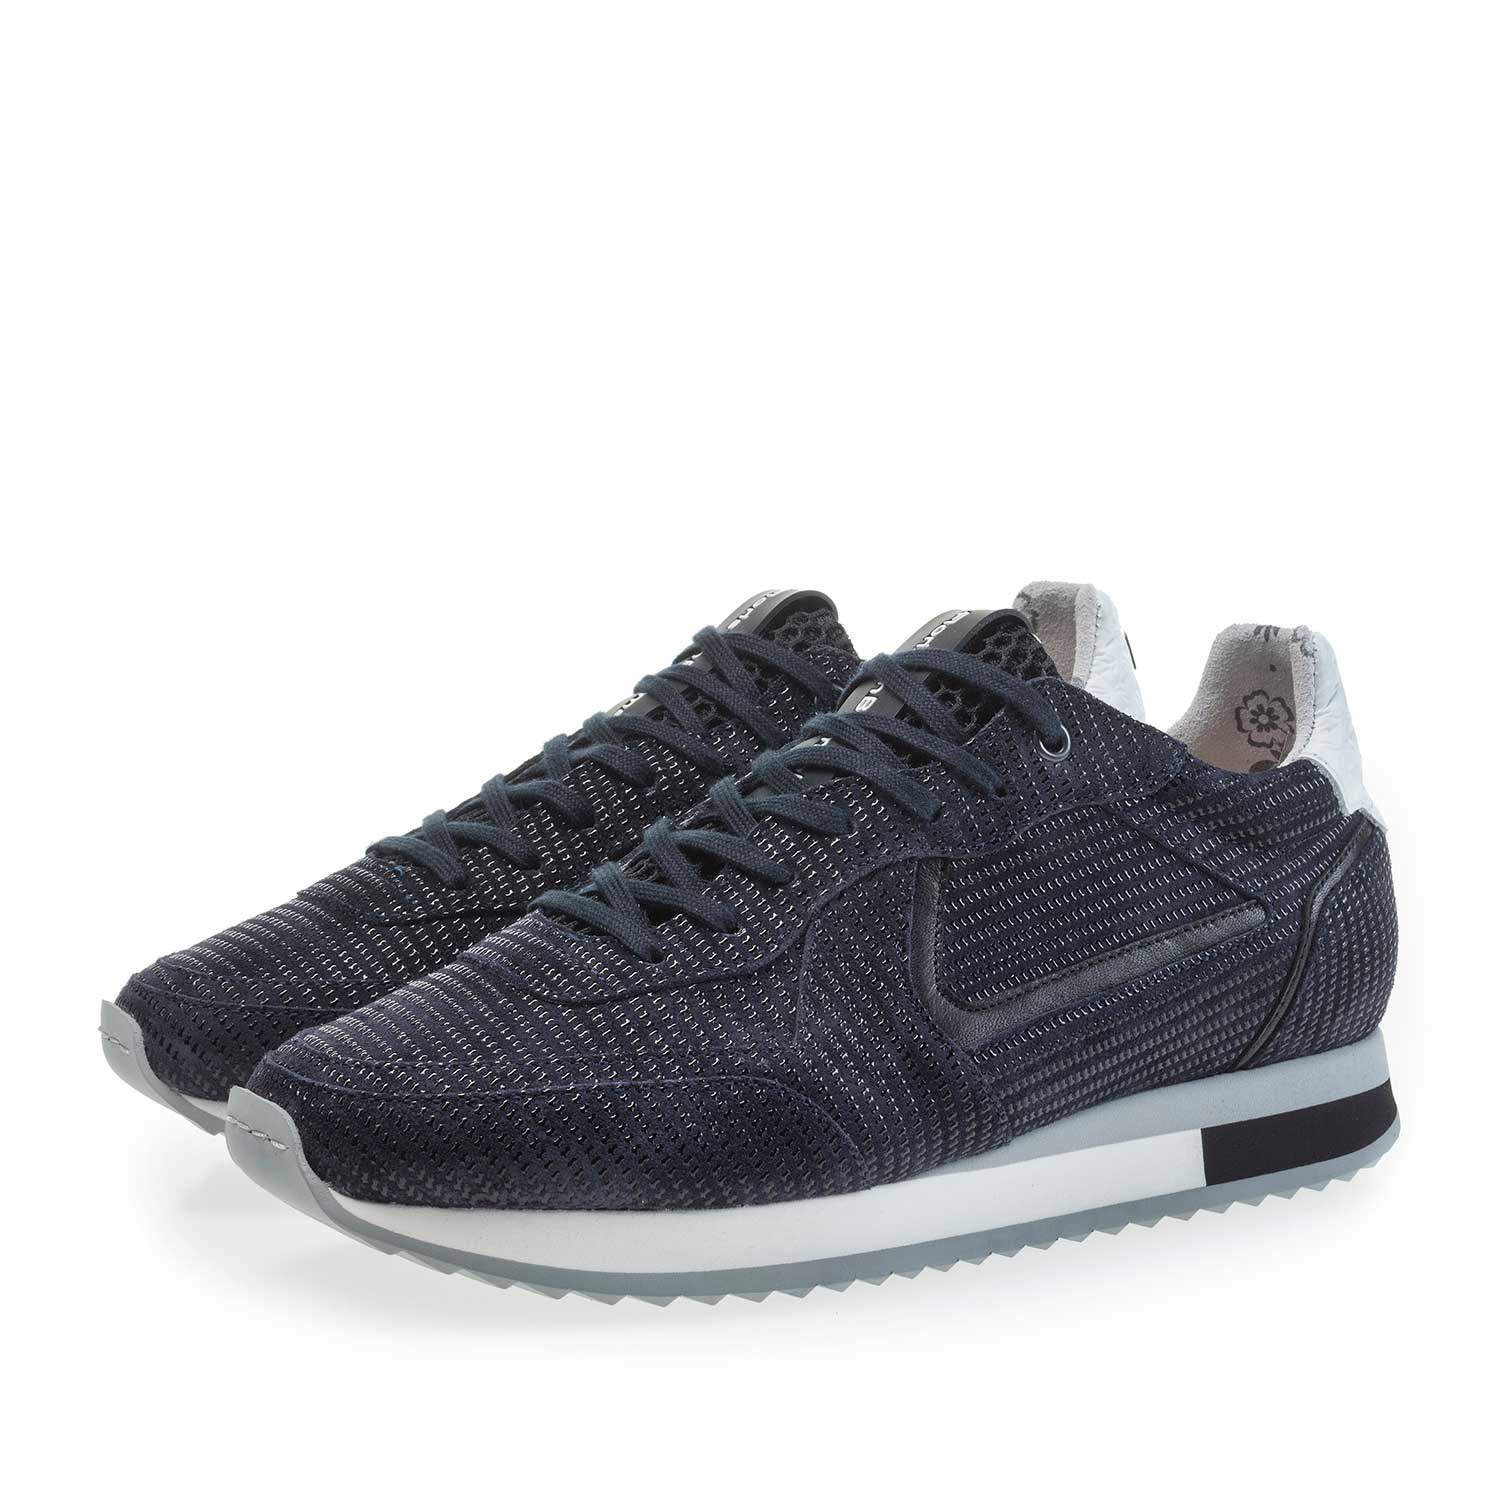 85232/02 - Dark blue calf's suede leather sneaker with printed motif